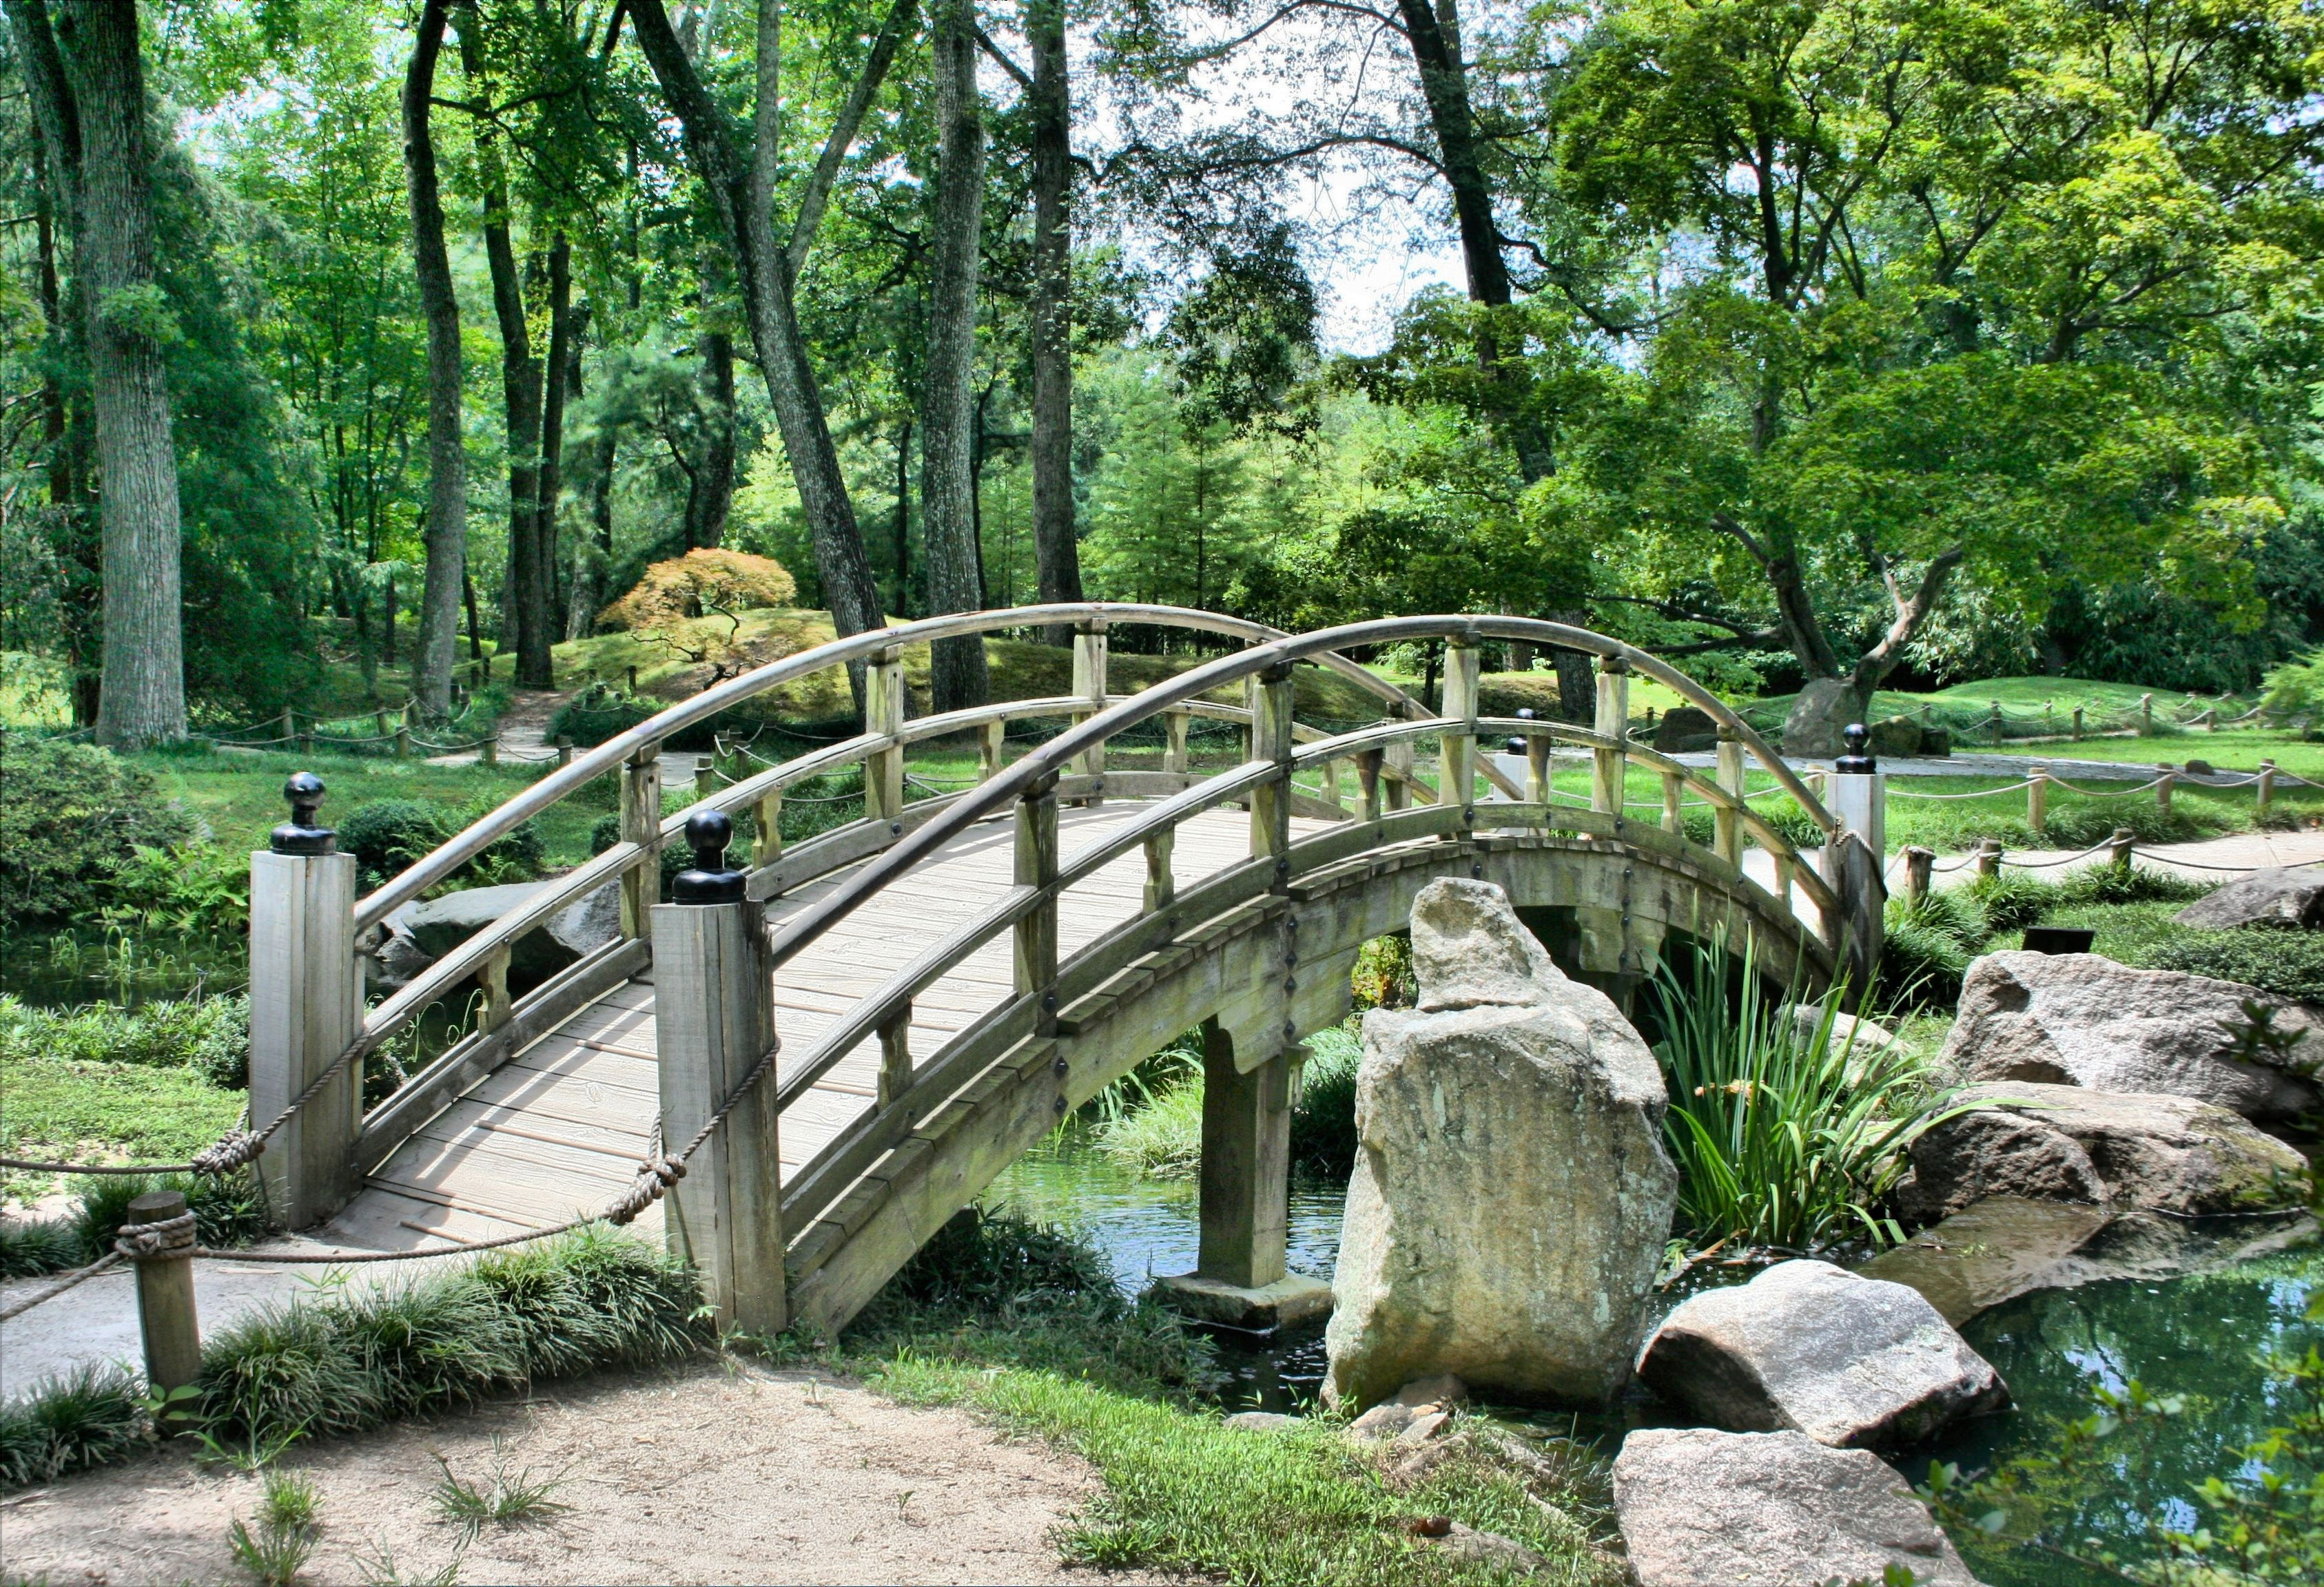 Bridge, park, follage, nature, trees, calm